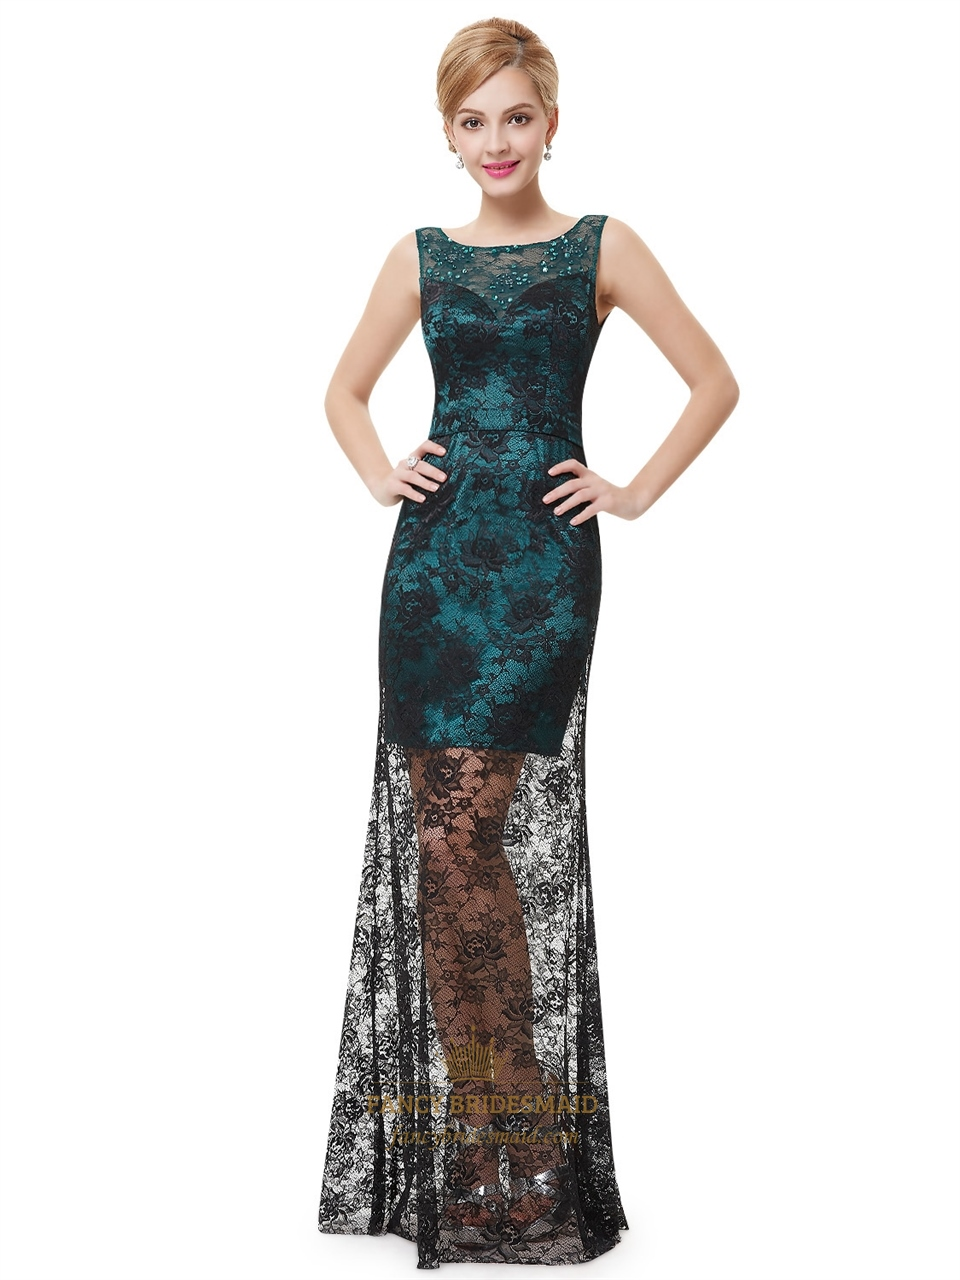 dark green and black lace overlay sleeveless prom dress